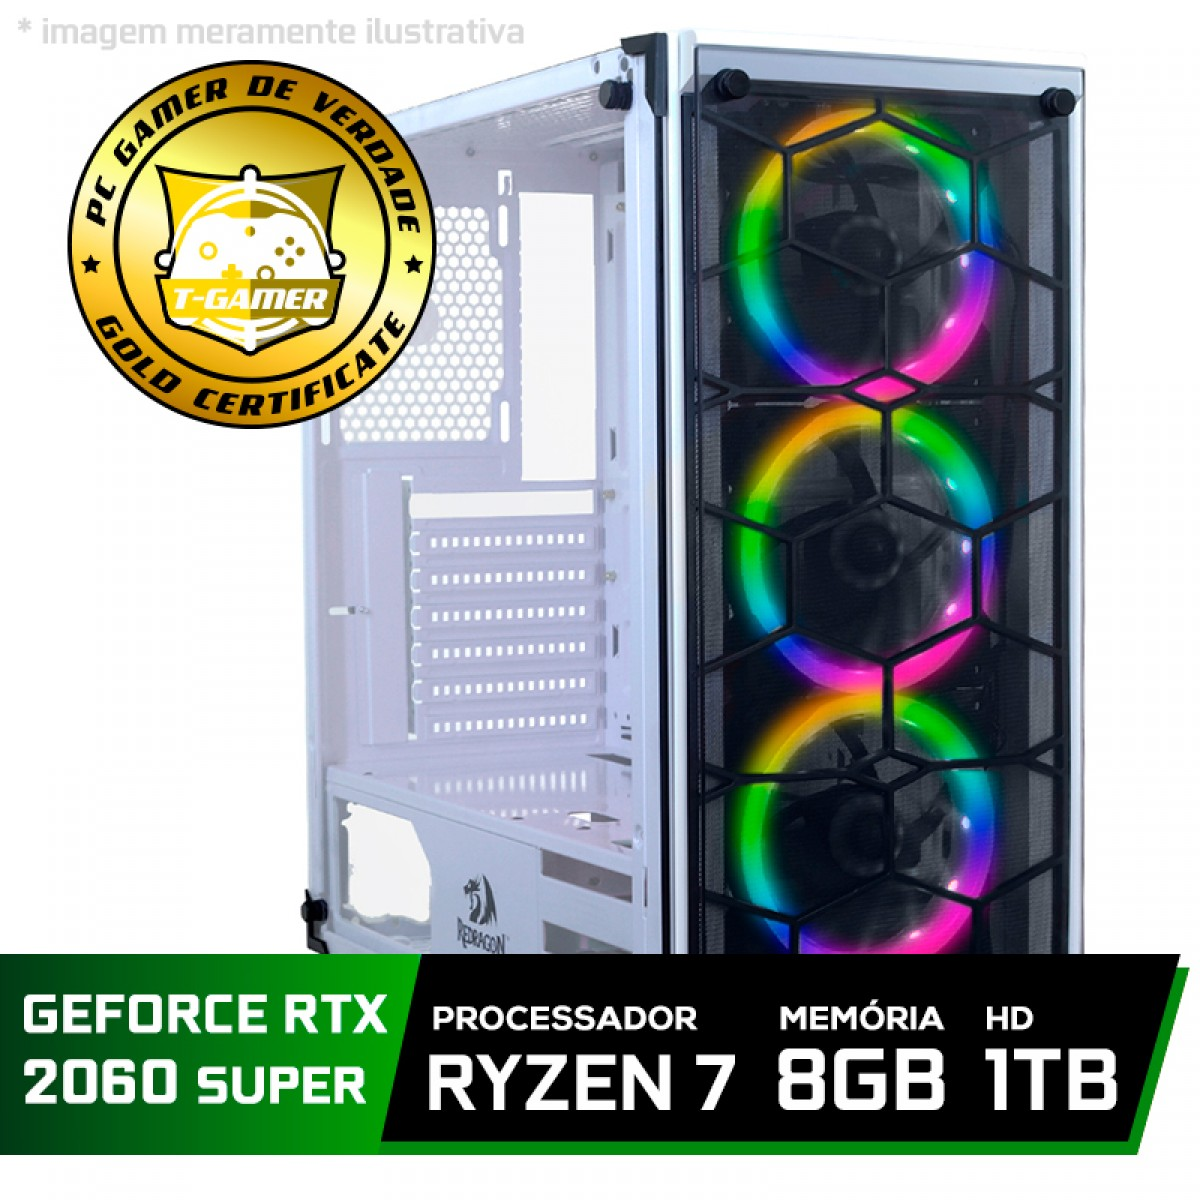 Pc Gamer Tera Edition Amd Ryzen 7 2700 / GeForce RTX 2060 Super / DDR4 8GB / HD 1TB / 600W